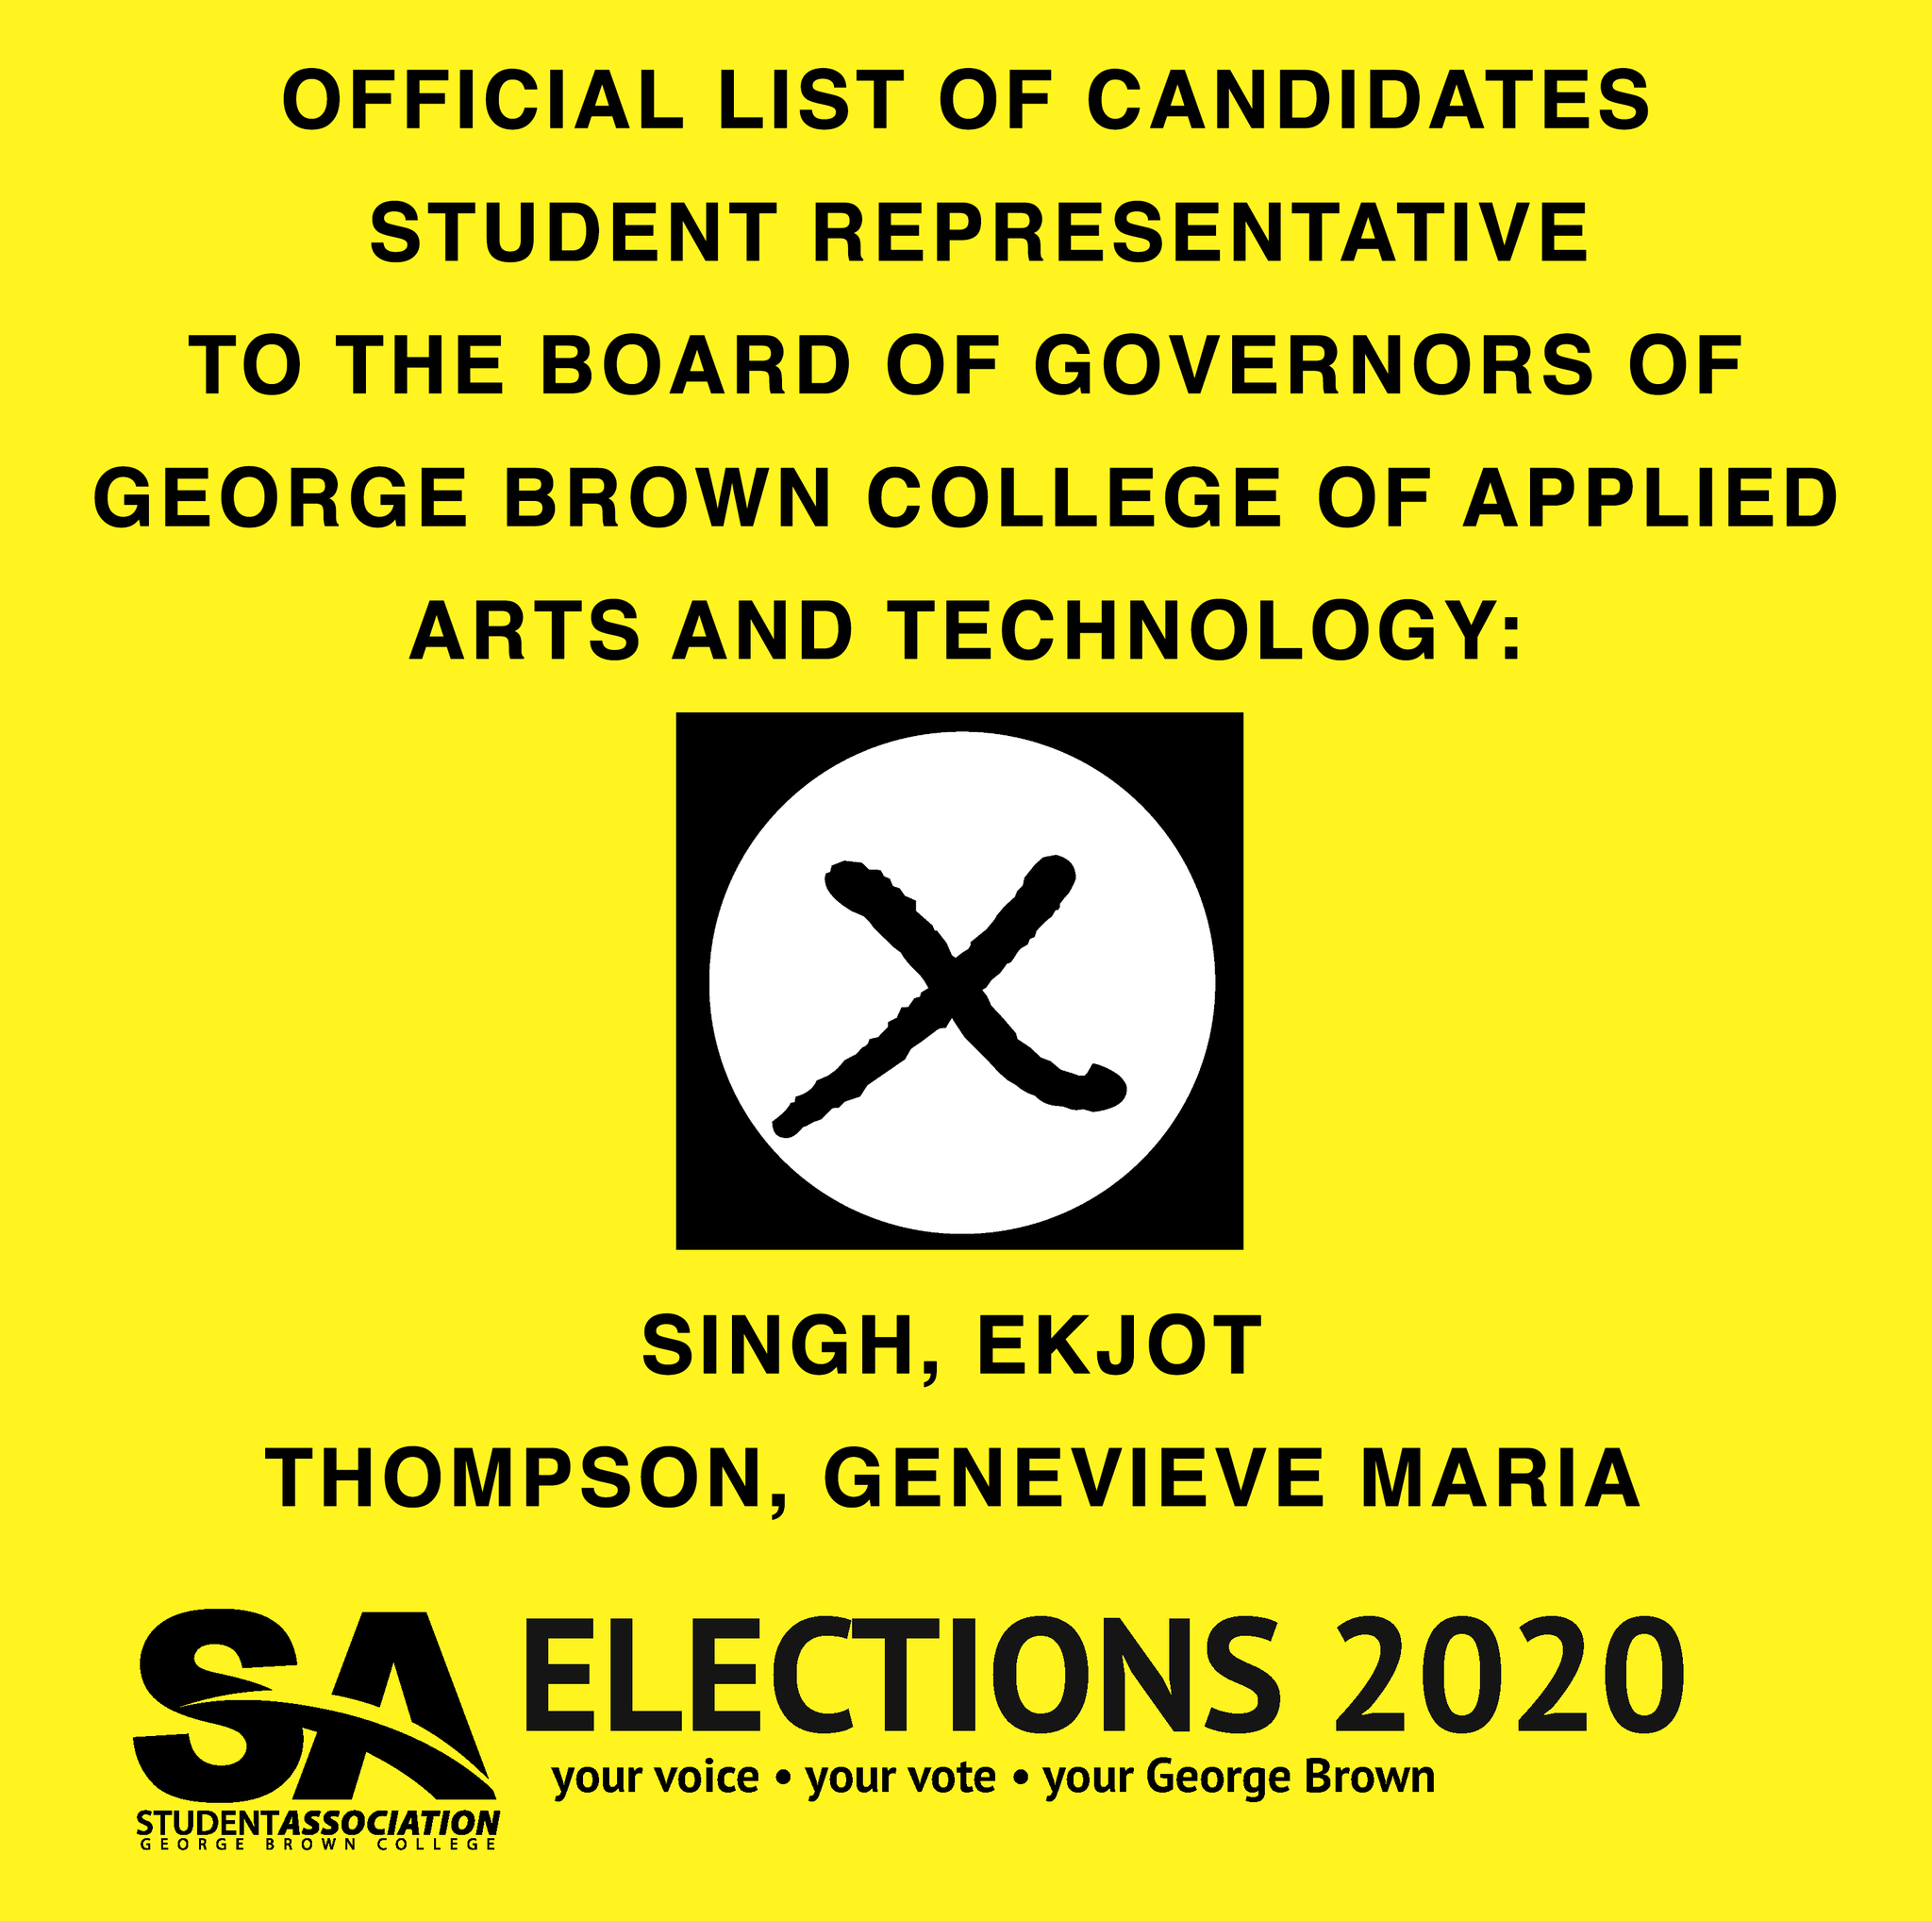 Sa Of Gbc On Twitter Gbc Students Who Haven T Voted Voting Period Of The 2020 Spring Election Will End April 3 2020 At 11 59 P M Official List Of Candidates For The Student